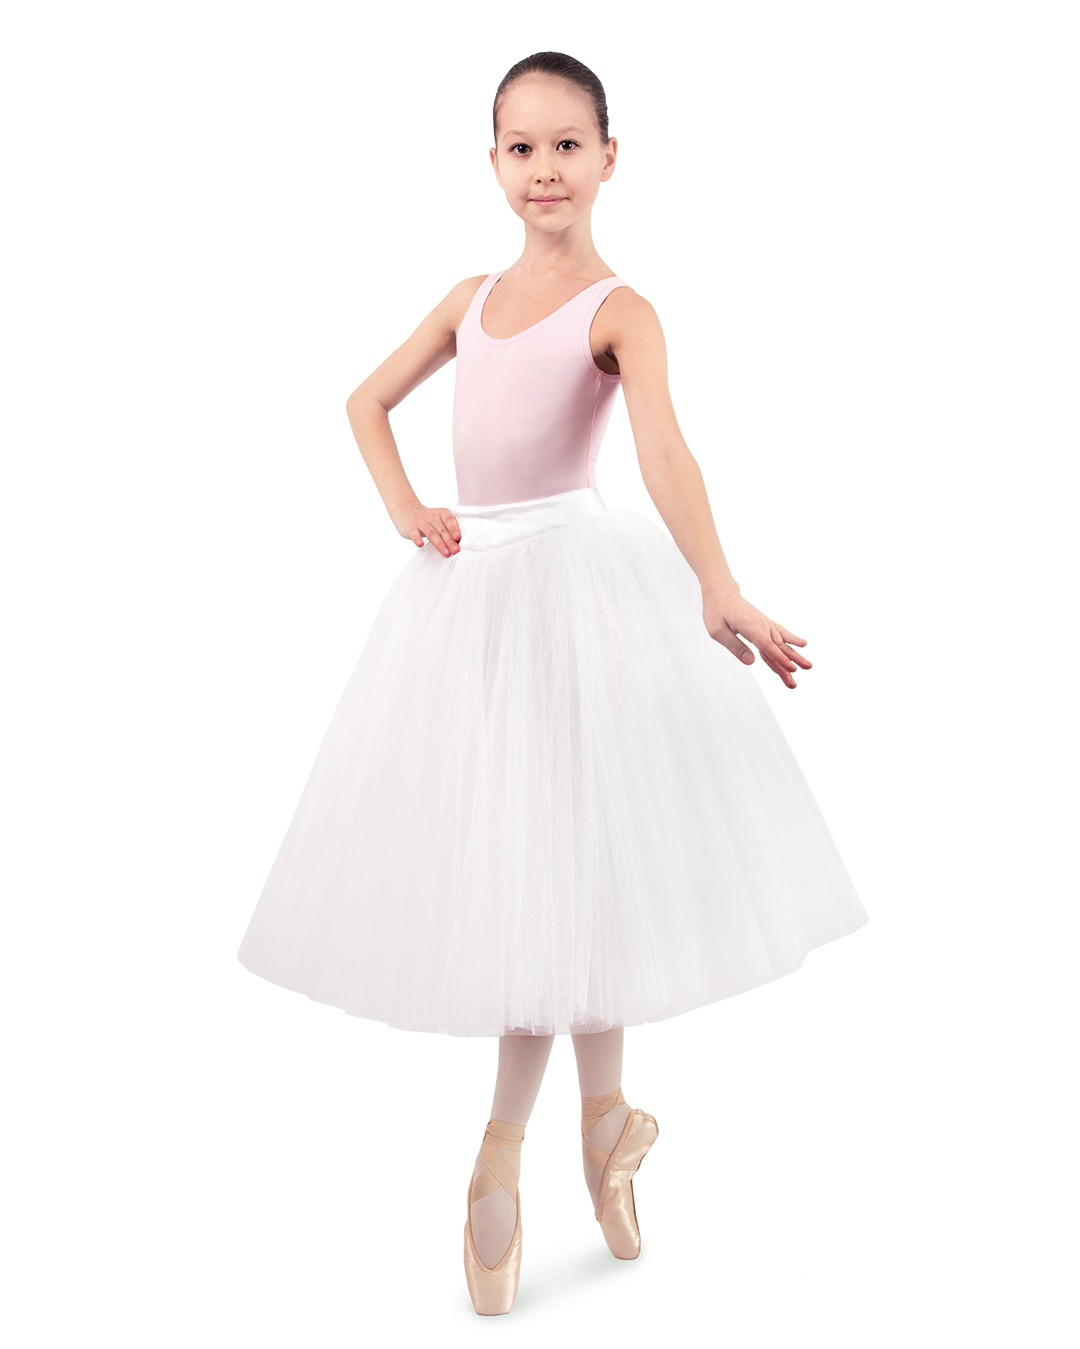 3-LAYER CHOPIN TUTU